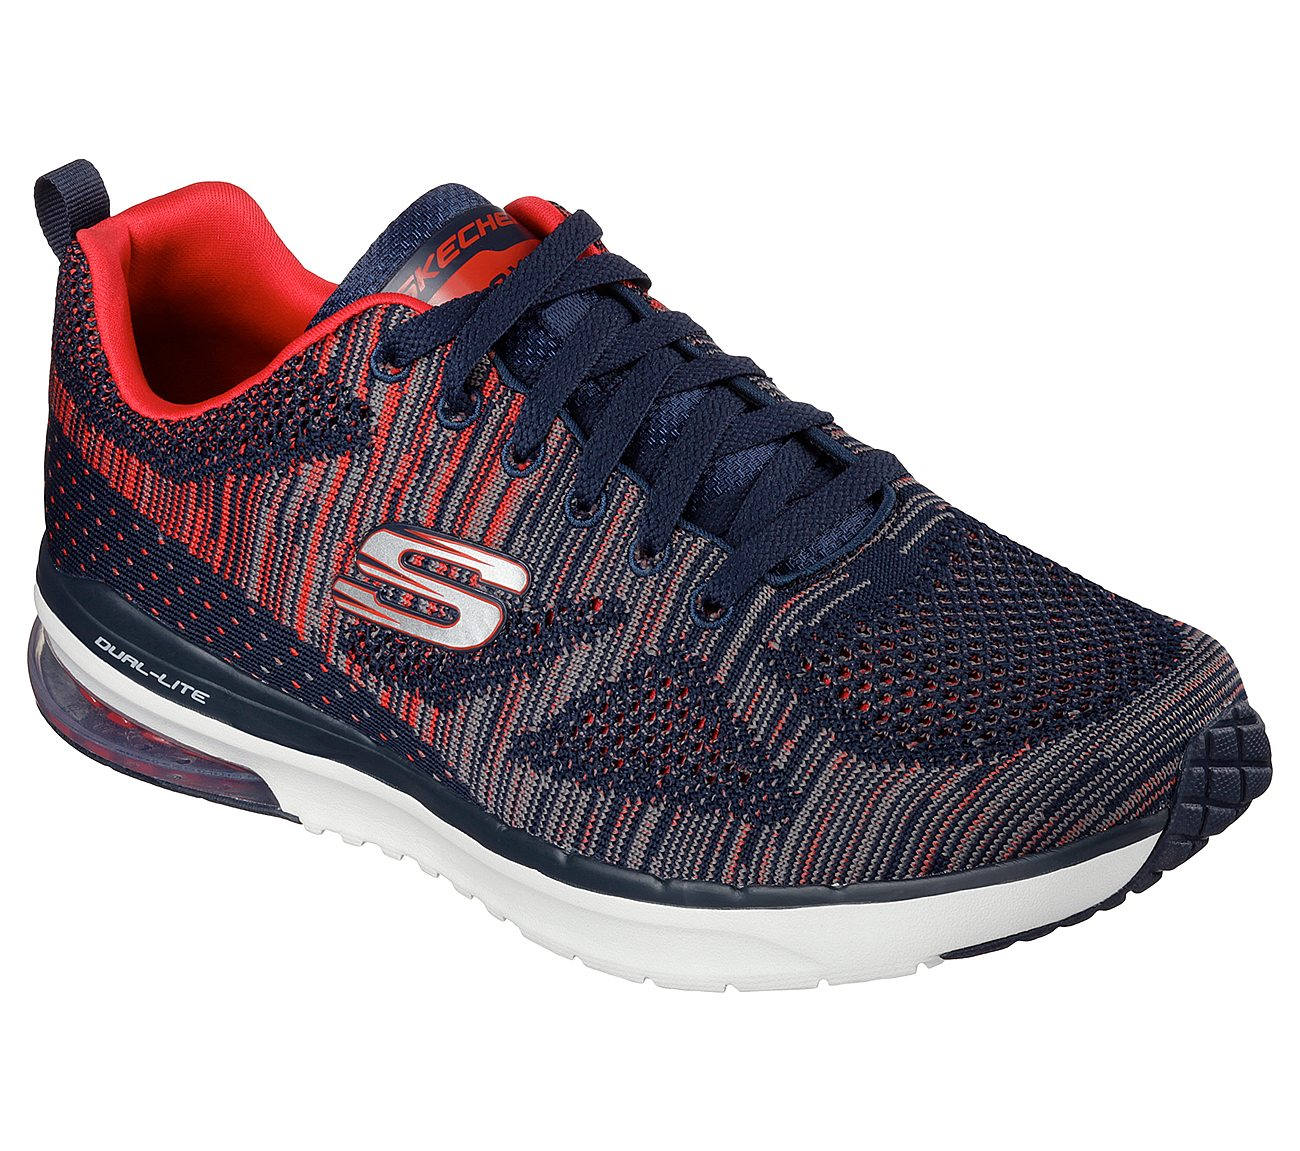 Skechers Women's Skech-Air Infinity Trainers BV_4125